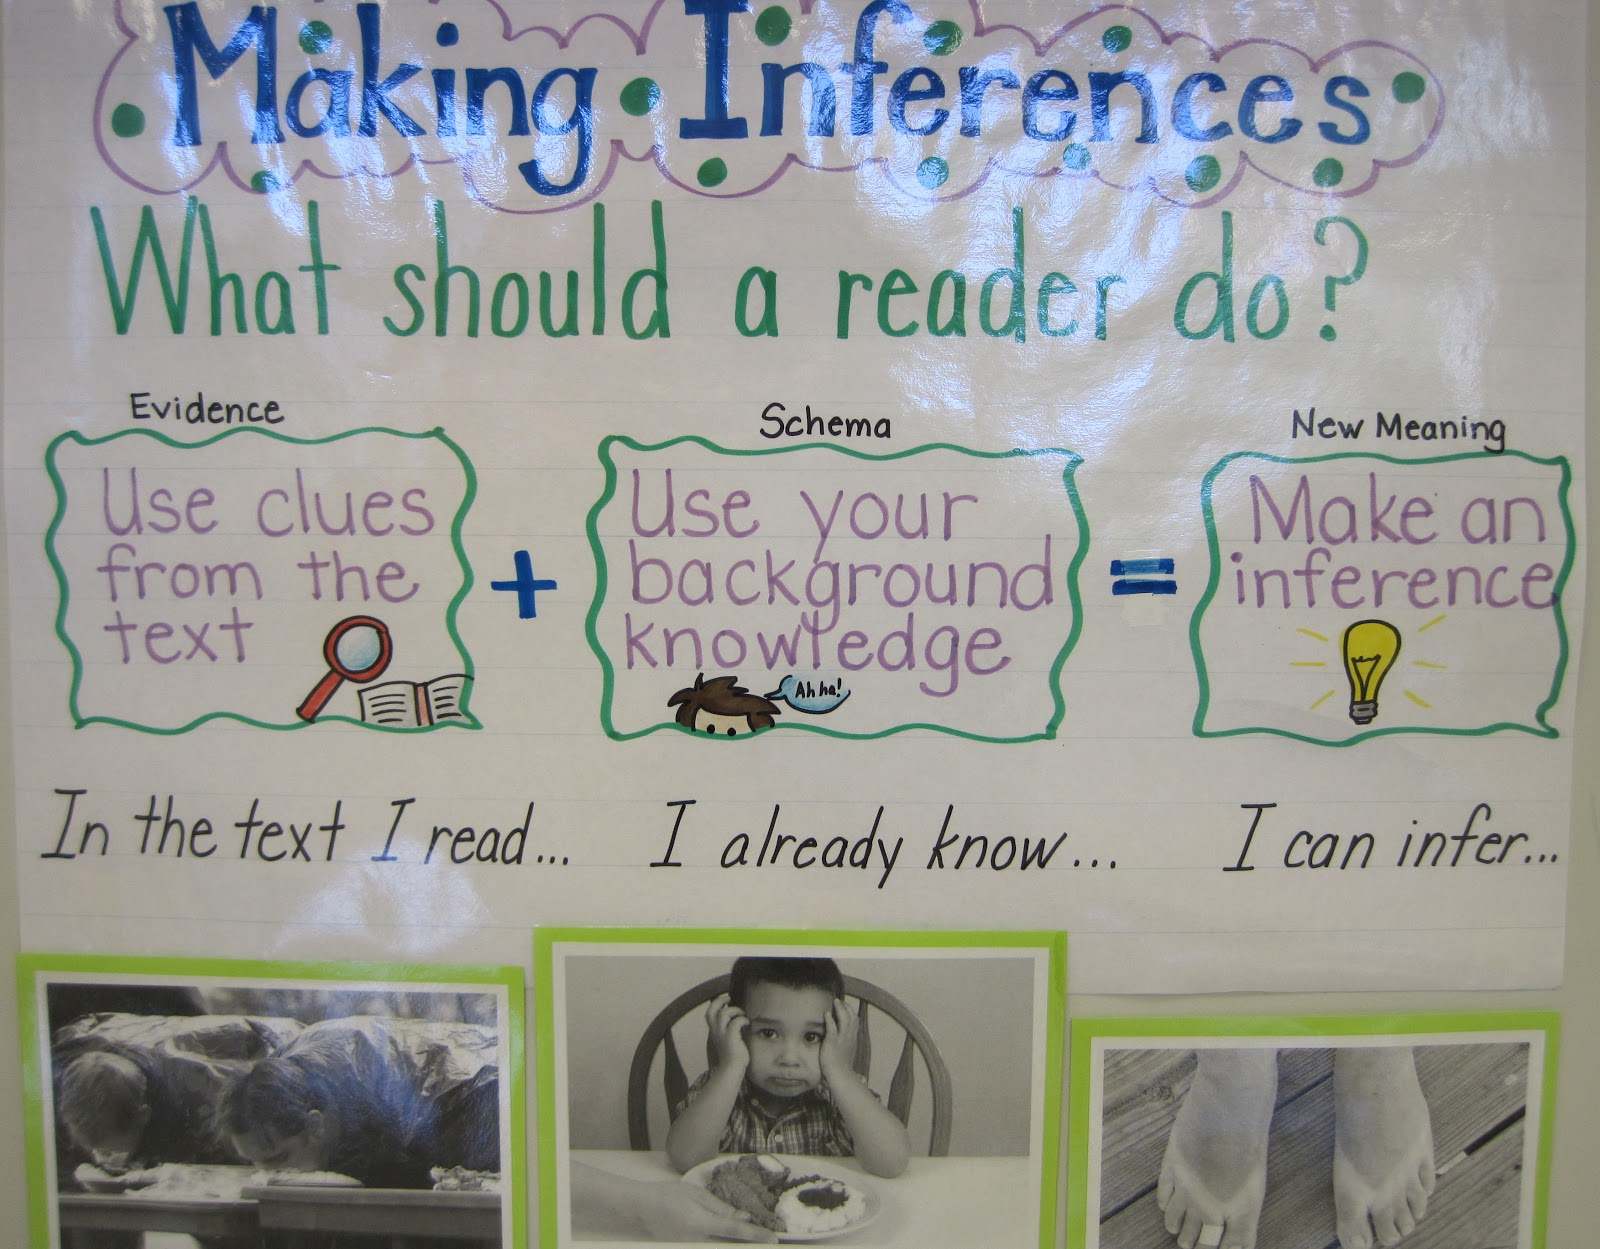 Making Inferences - ThingLink